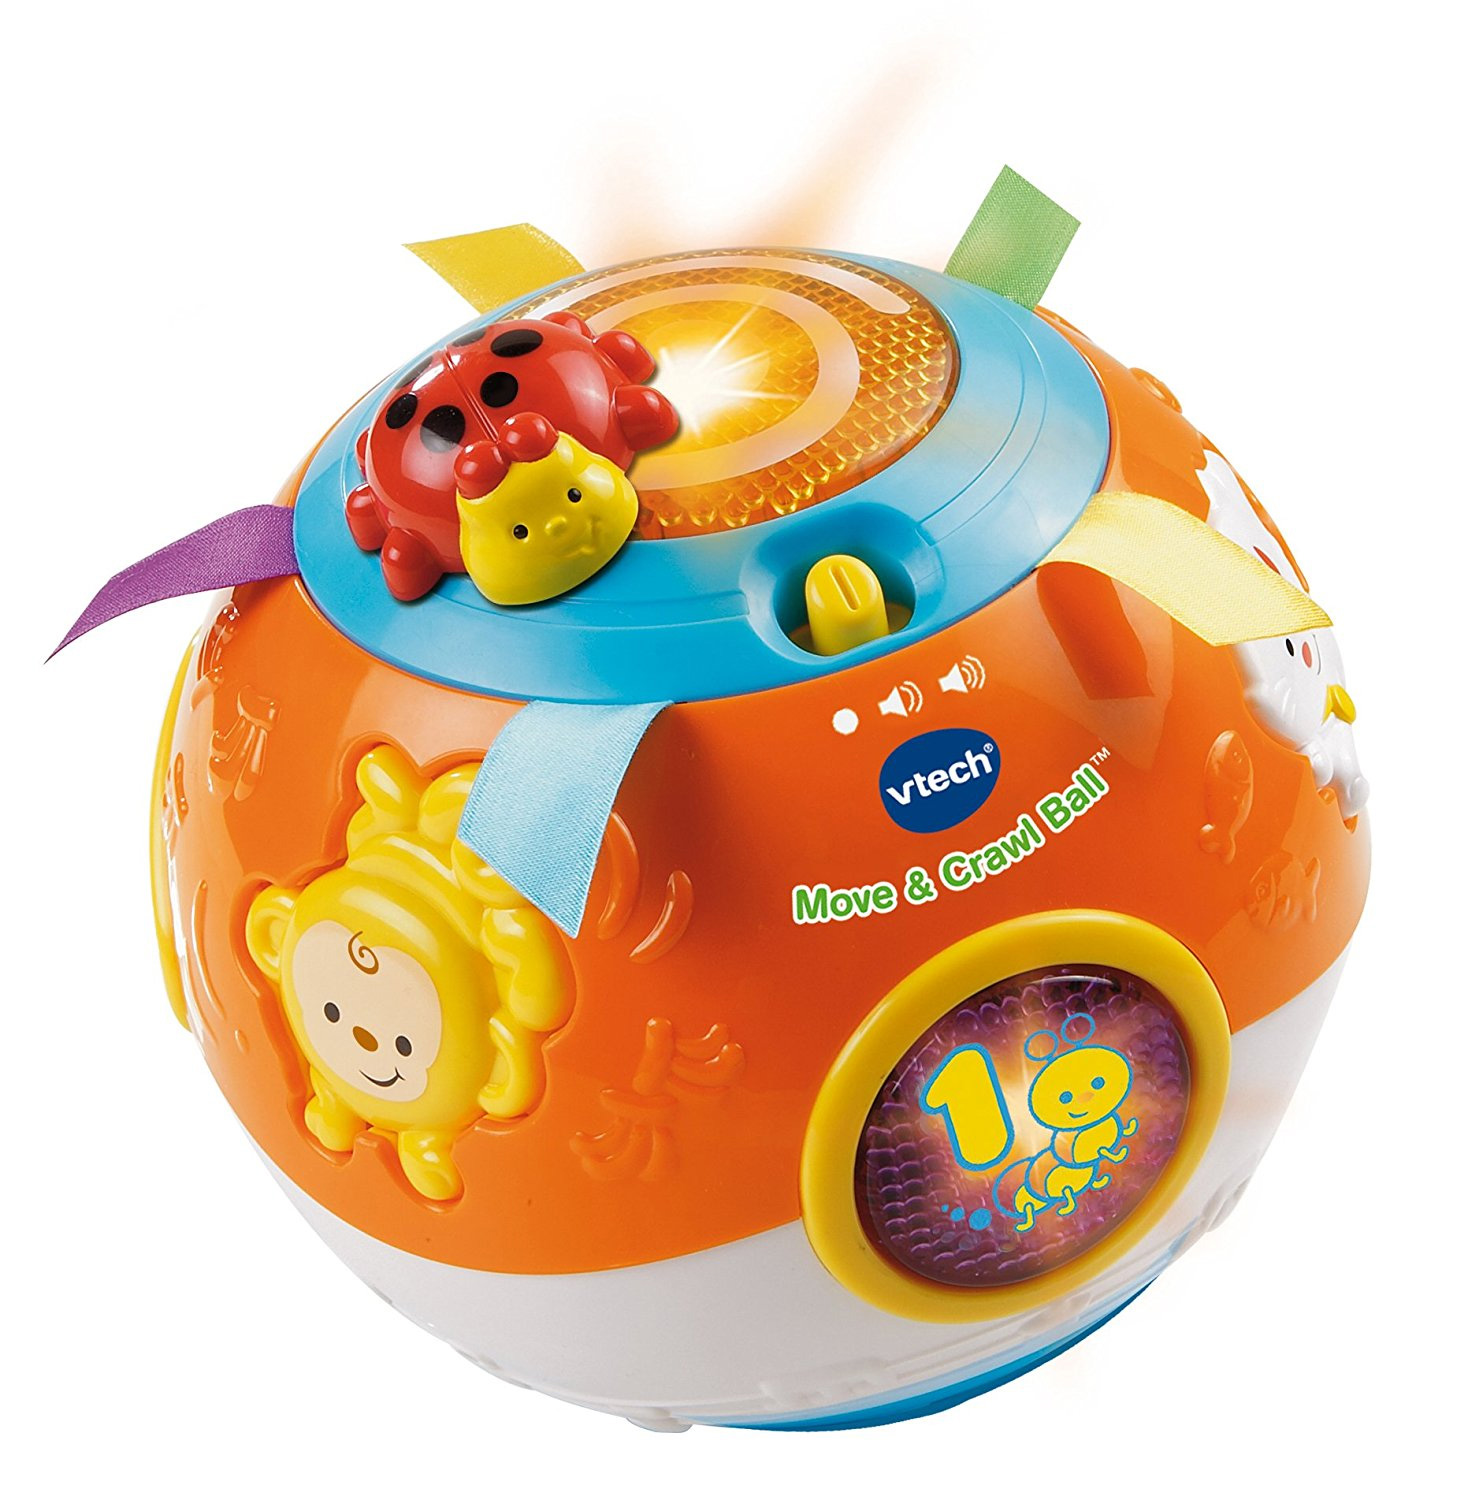 VTech-Move-and-Crawl-Baby-Ball,-Orange